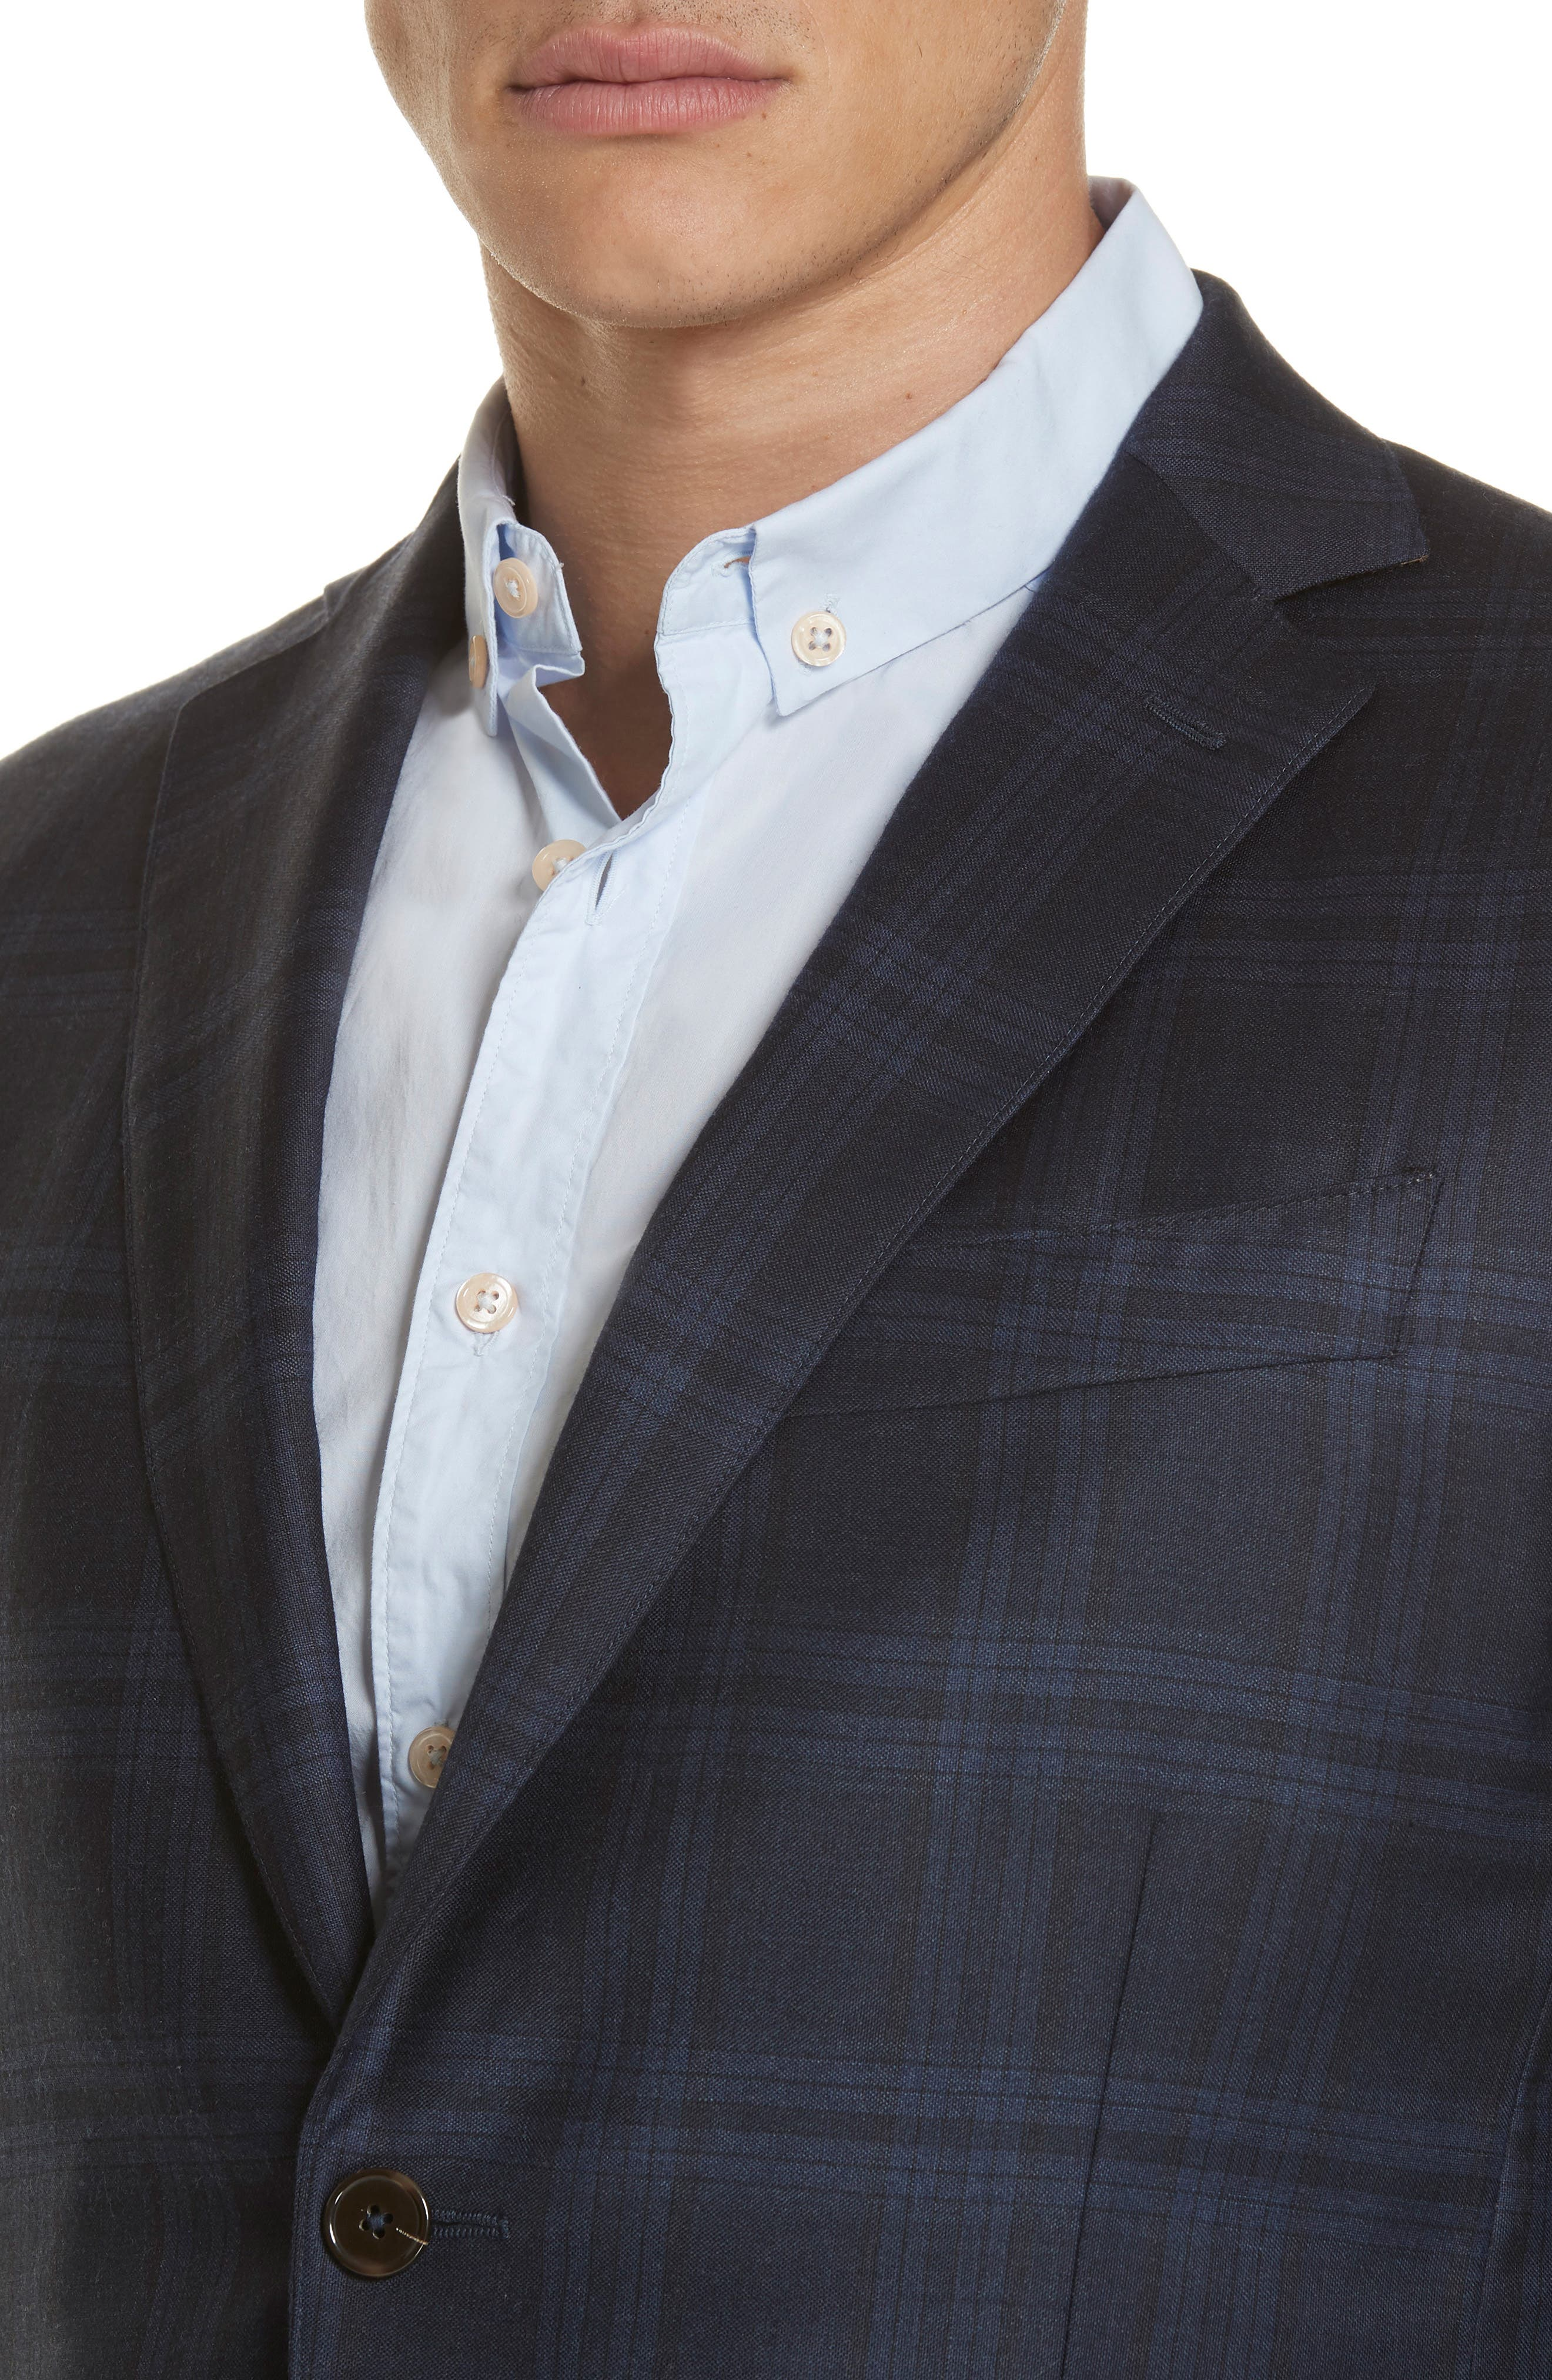 Trim Fit Plaid Wool & Cashmere Suit,                             Alternate thumbnail 4, color,                             CHARCOAL/ BLUE